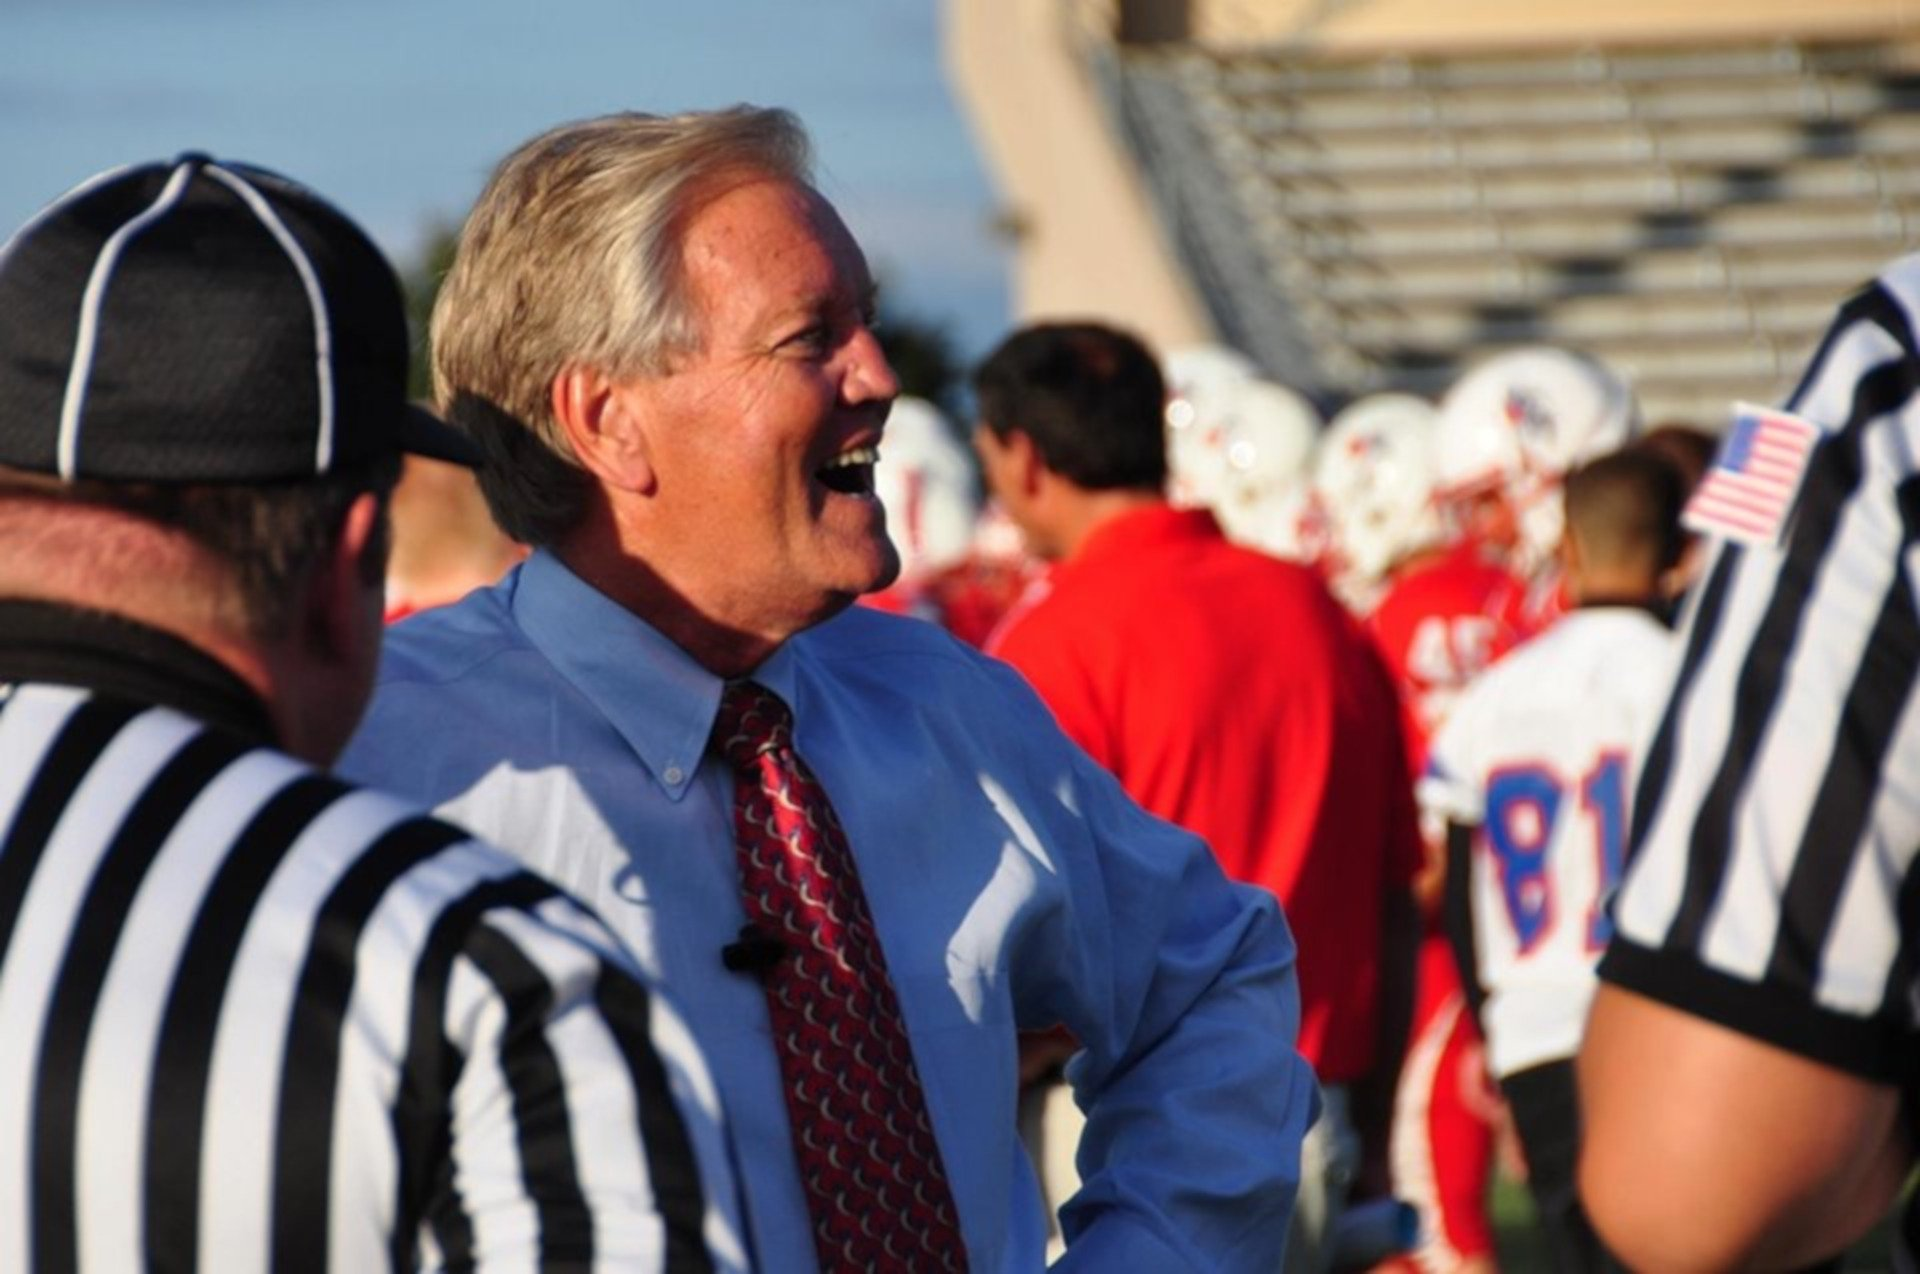 Ross Hjelseth smiles on the sideline of a football game in front of two referees.